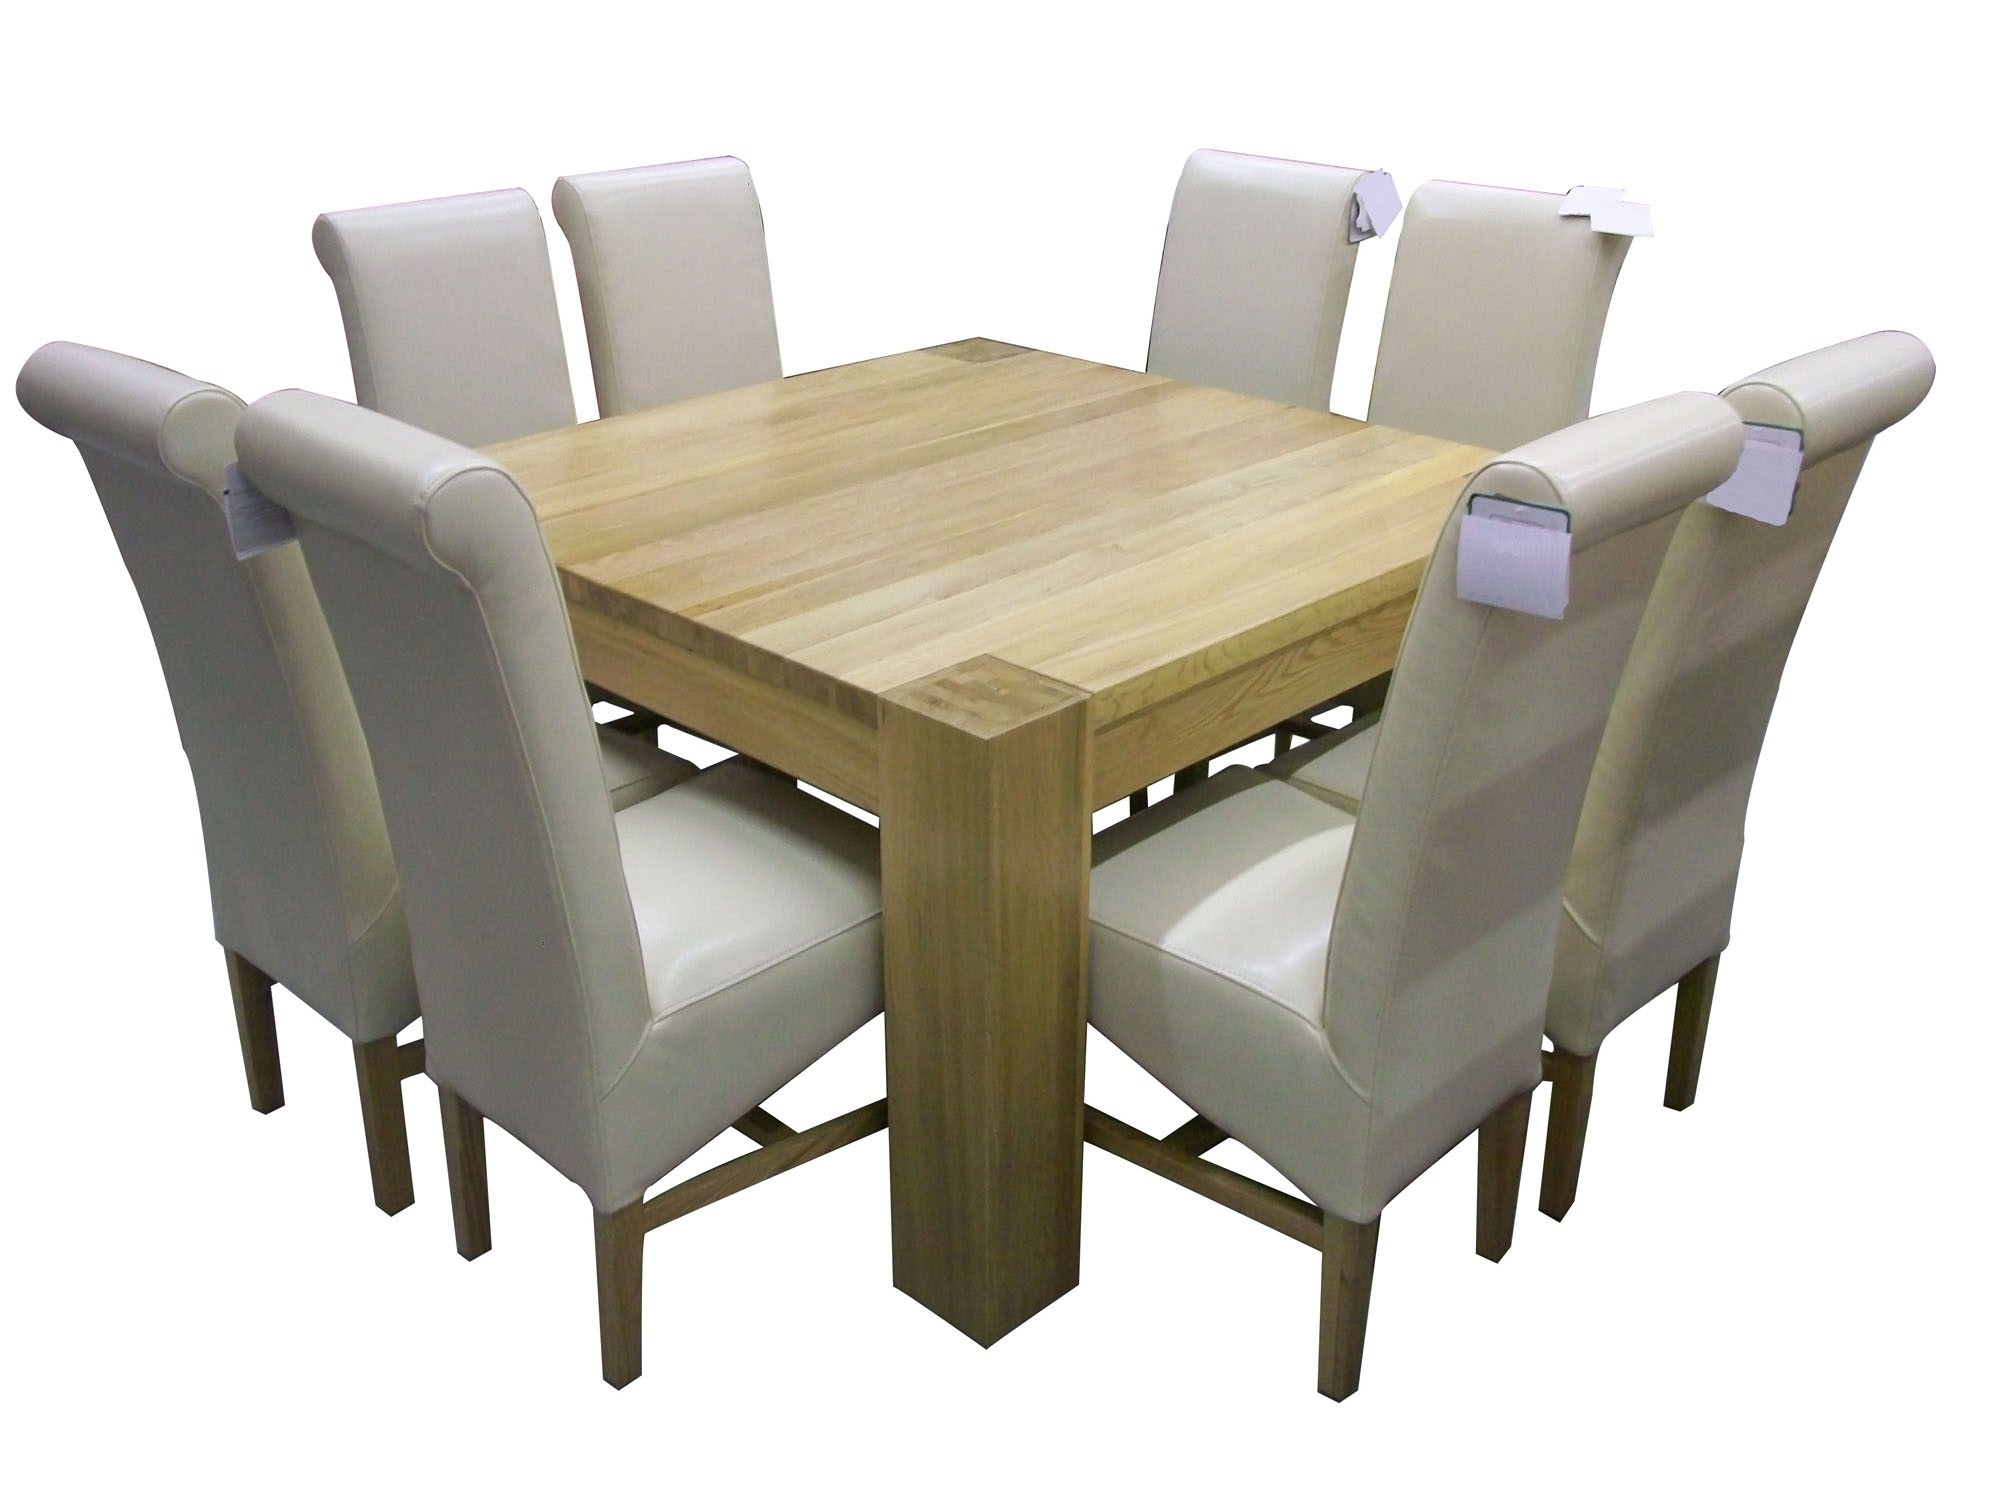 Solid Oak Dining Tables And 8 Chairs Regarding 2018 Solid Oak Dining Room Table And 8 Chairs Inspirational White Square (View 20 of 25)